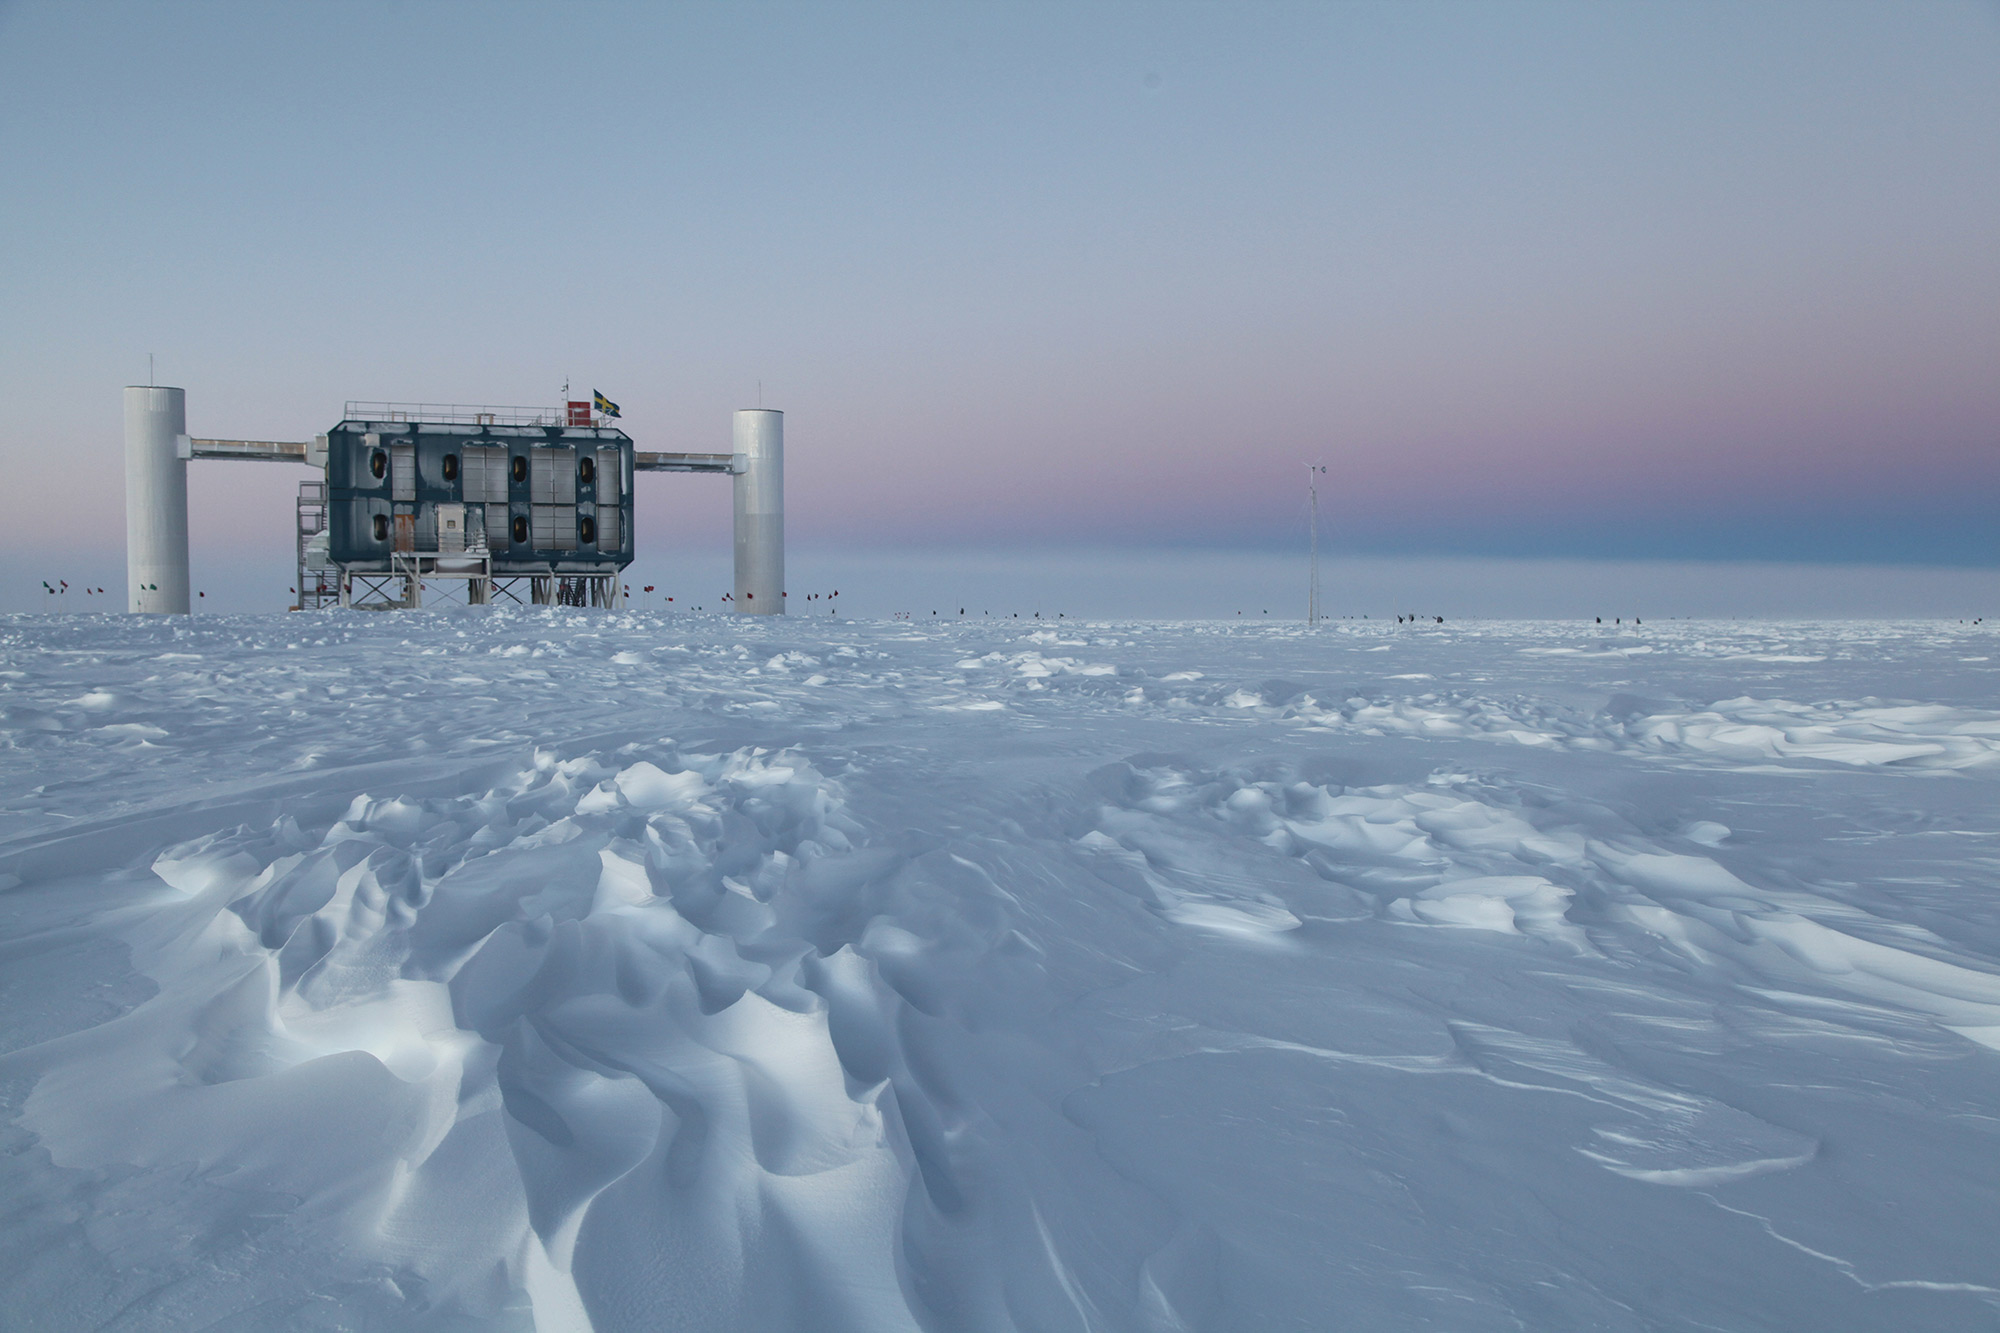 A building amidst snowdrifts on the vast Antarctic ice cap